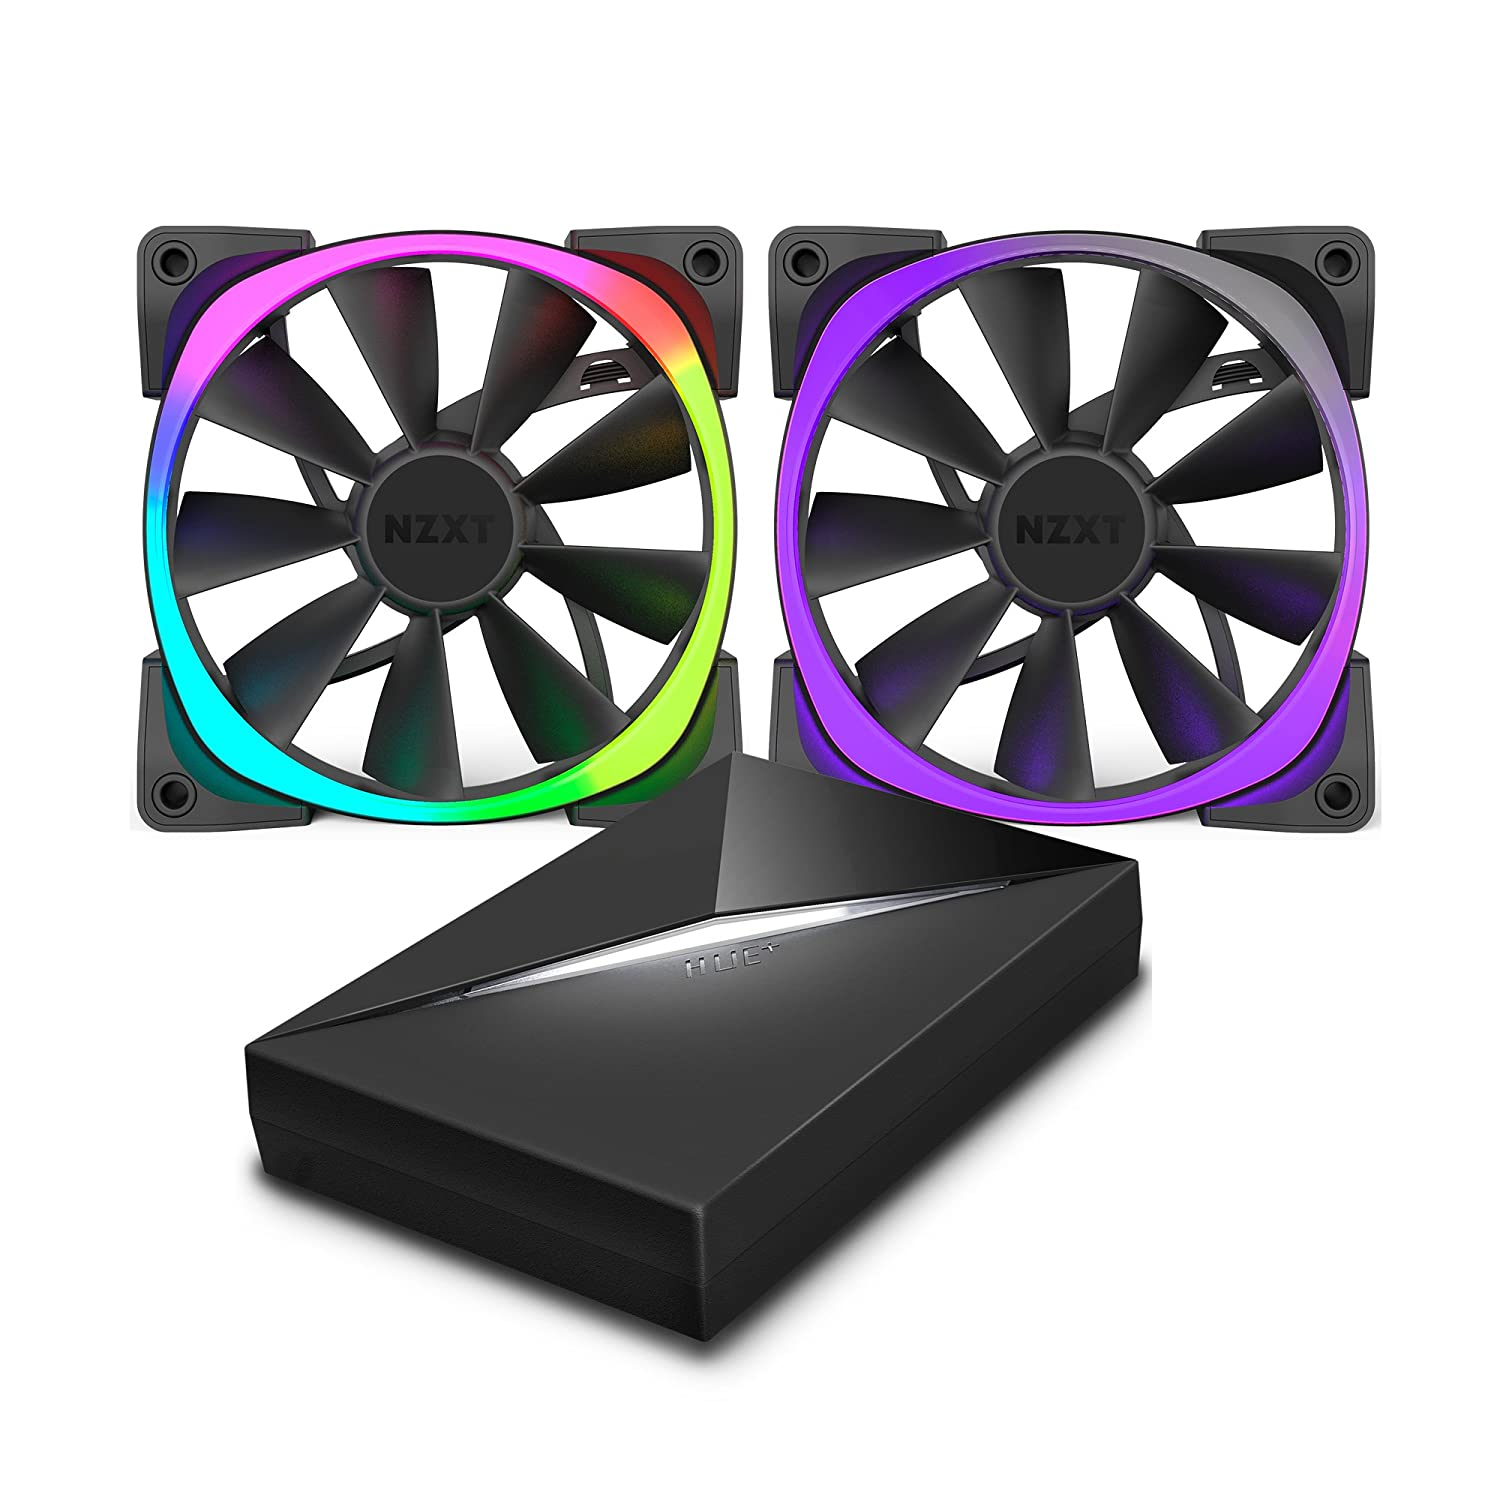 NZXT Aer RGB120 120 mm RGB LED Fan with HUE Controller - Black (Pack of 2):  Amazon.co.uk: Computers & Accessories